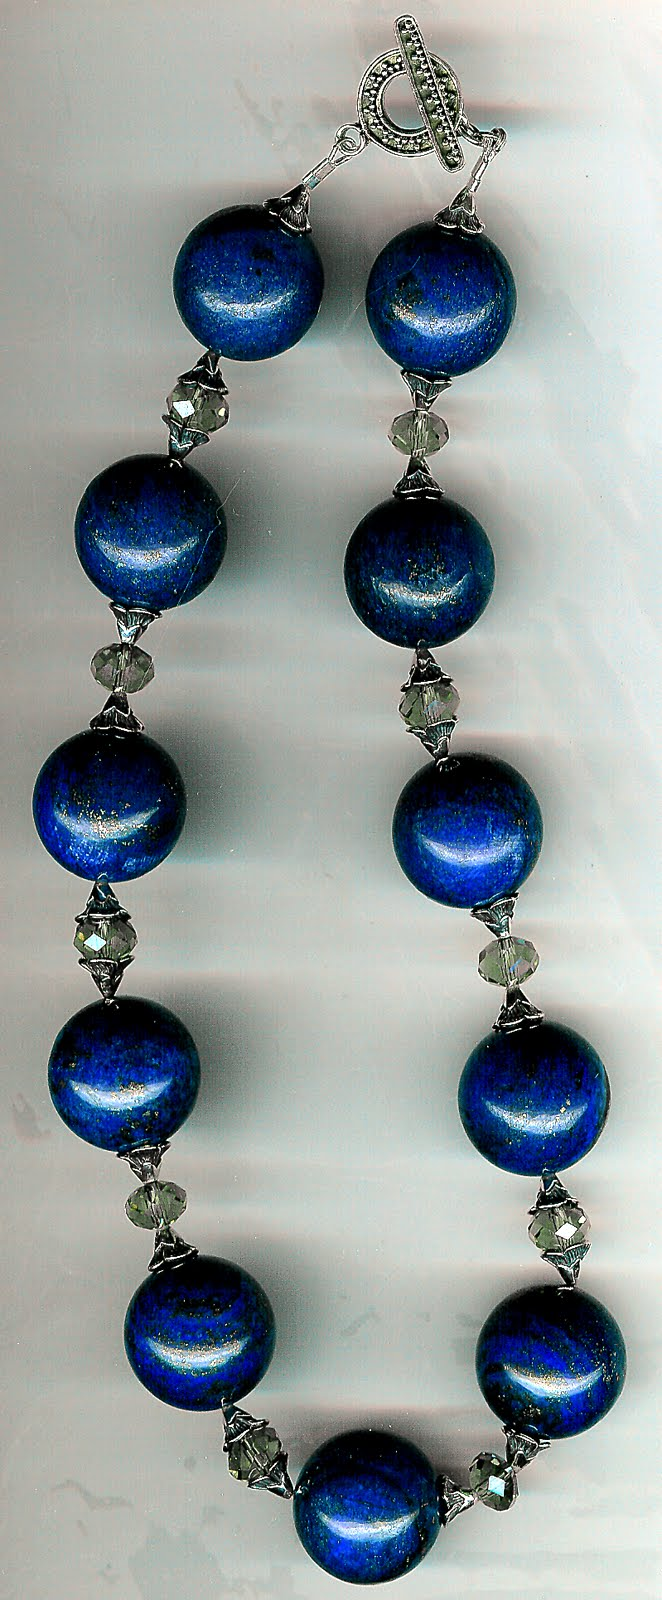 127. Lapis Lazuli, Crystal with Bali  Sterling Silver